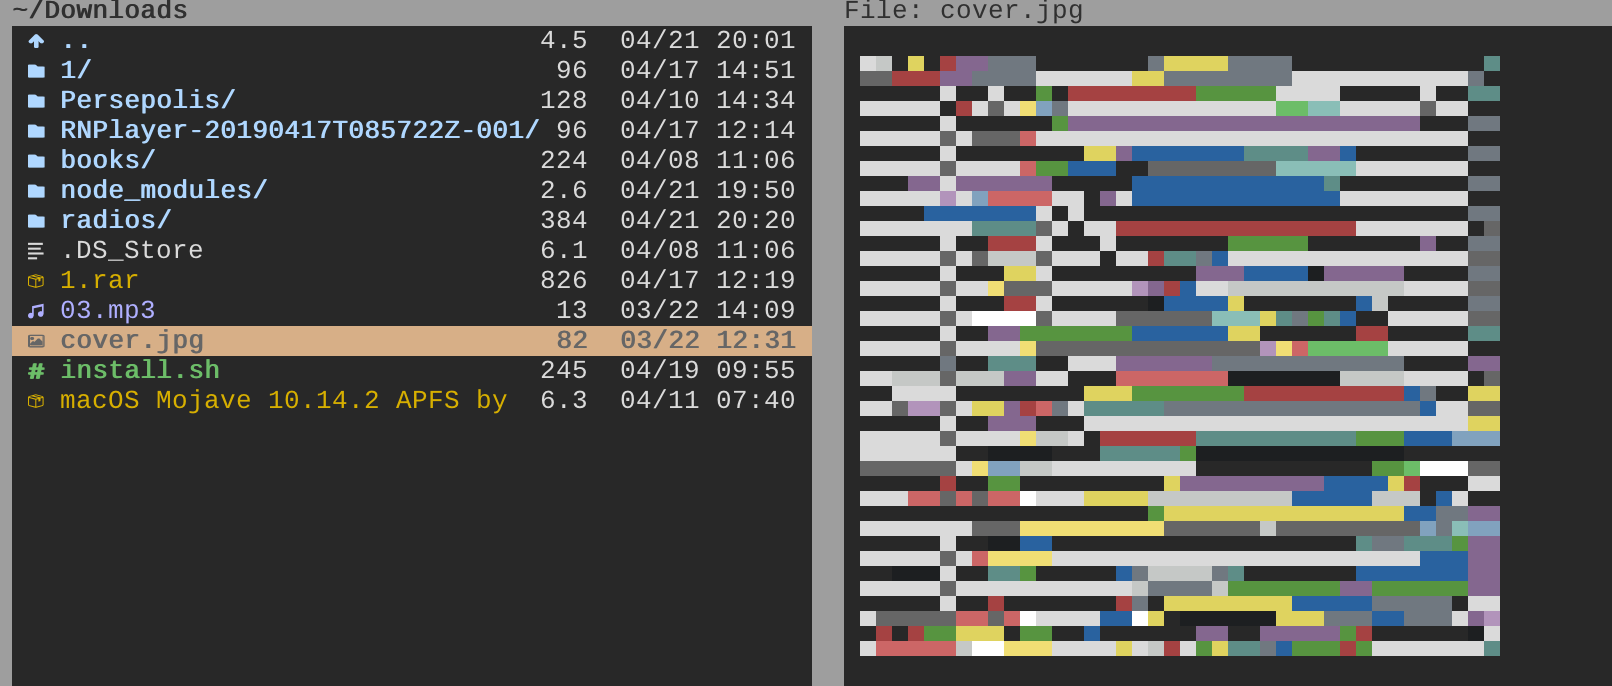 Image preview in terminal (catimg or pixterm)